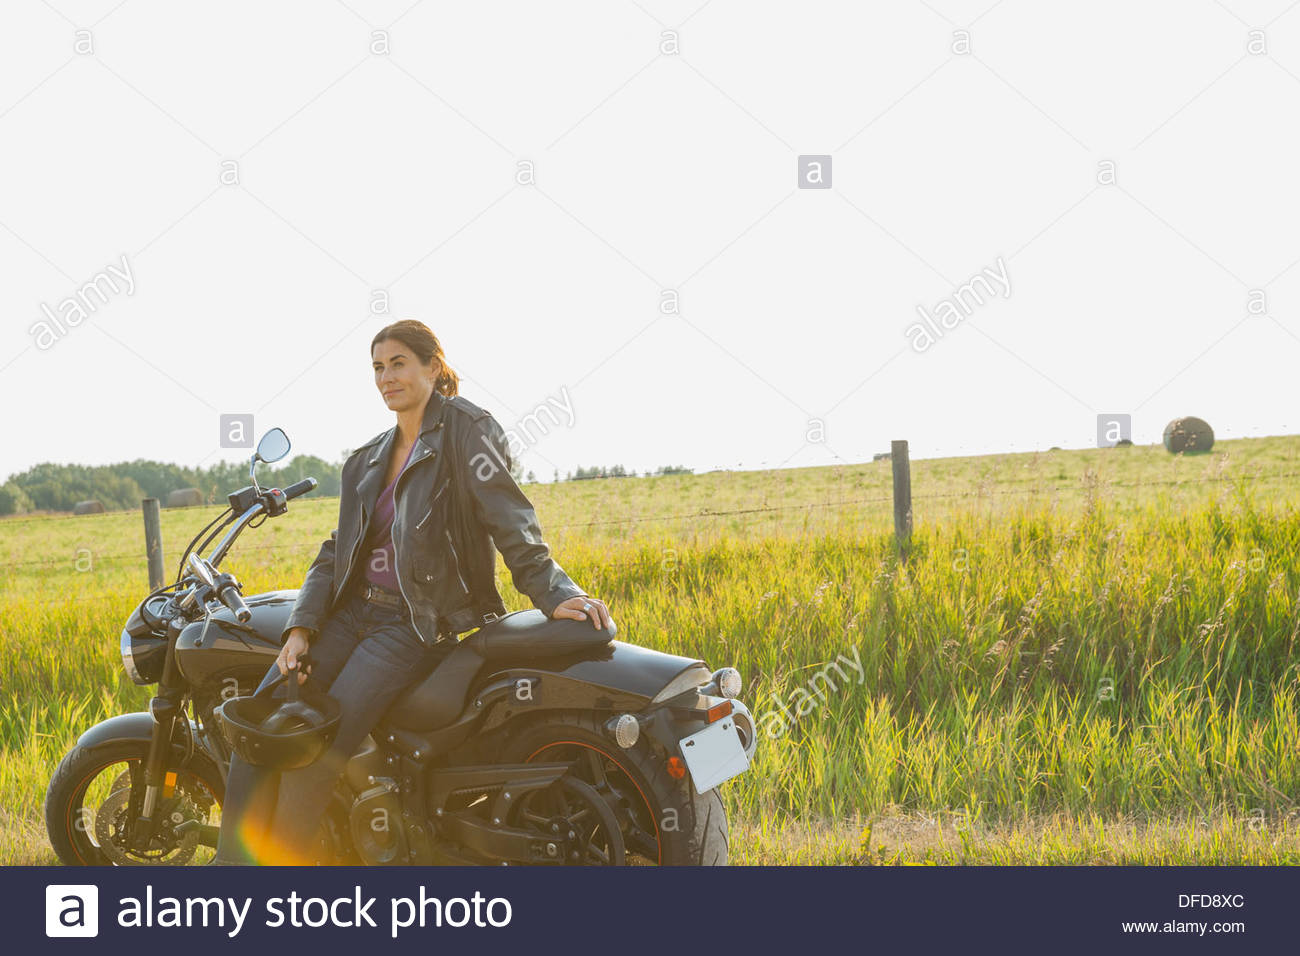 Thoughtful female biker leaning against motorcycle - Stock Image